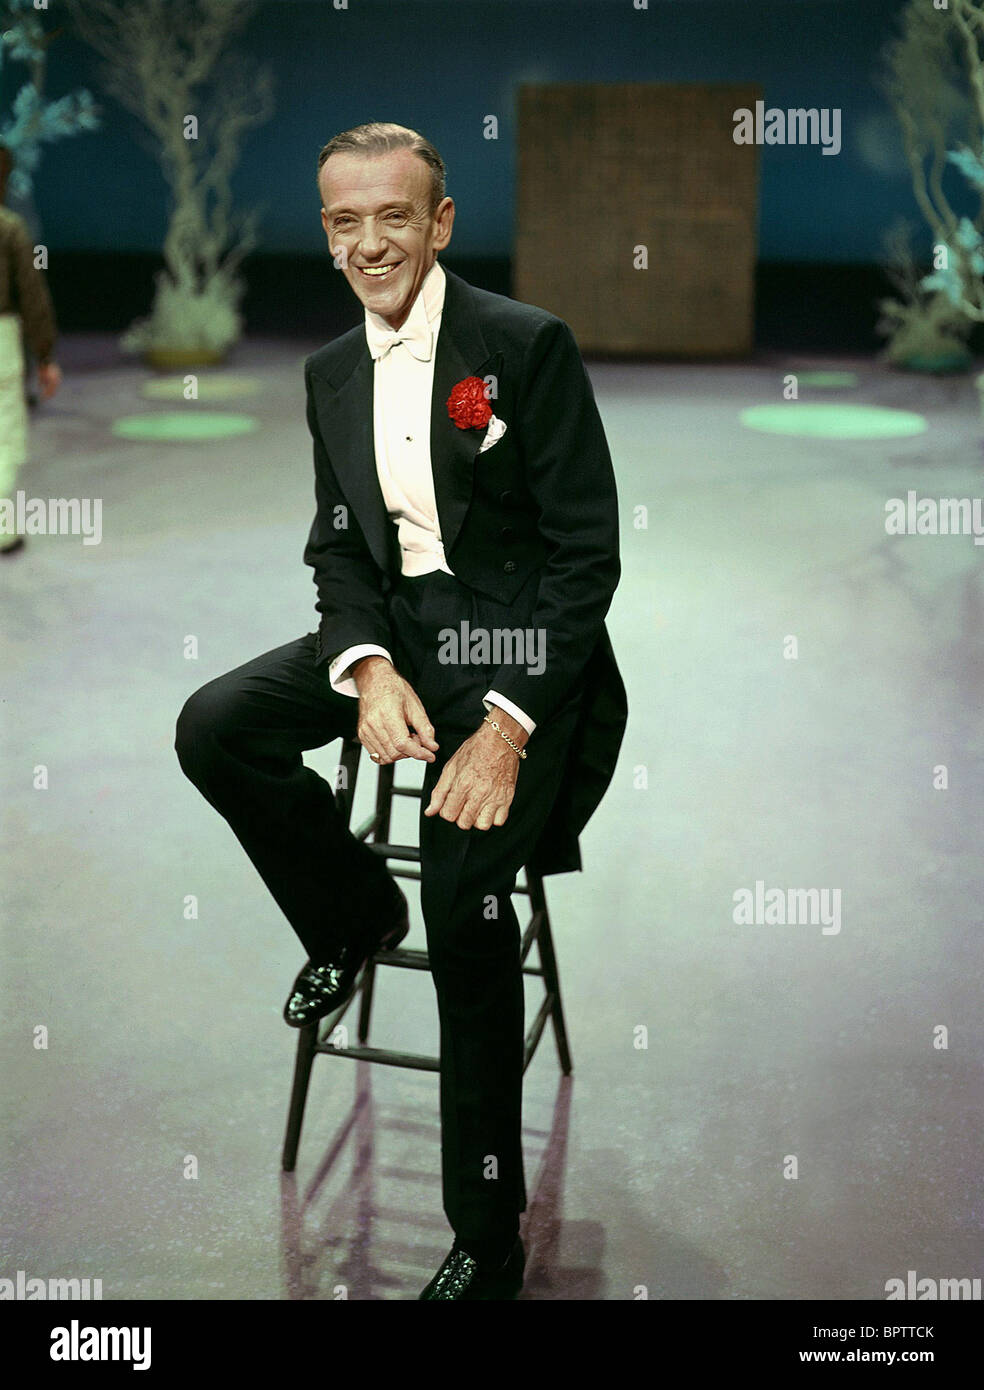 FRED ASTAIRE ACTOR AND DANCER (1955) - Stock Image